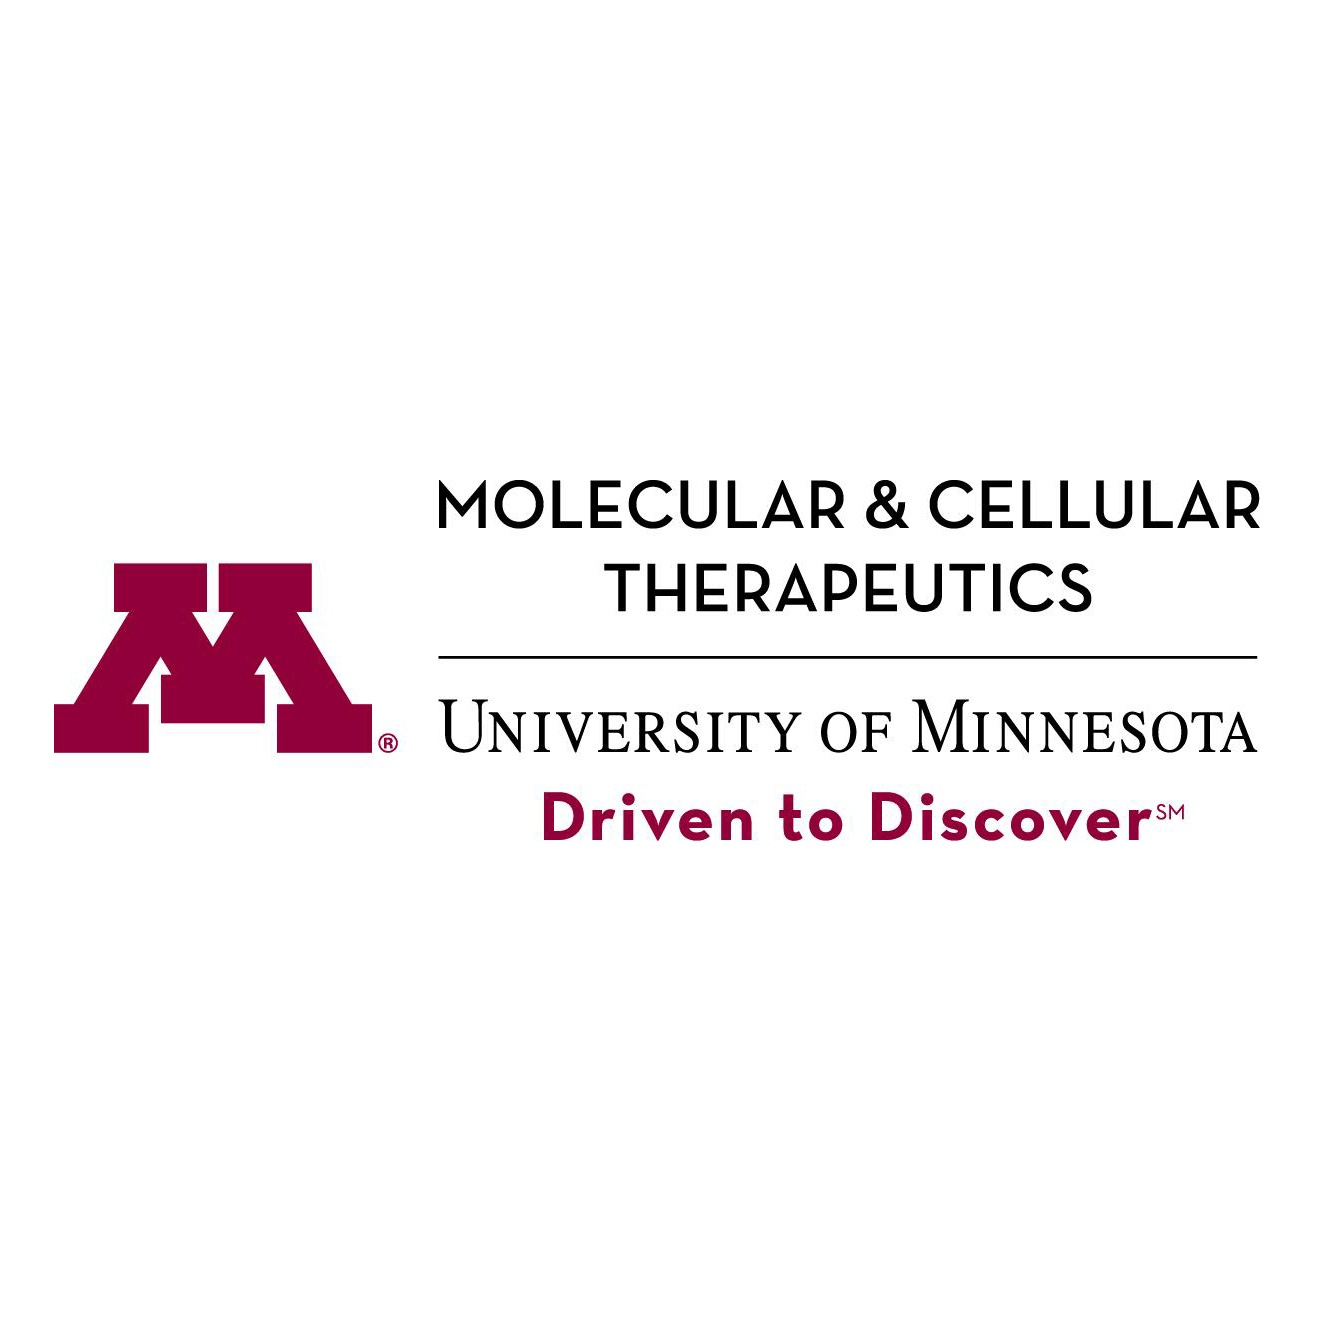 University of Minnesota Molecular and Cellular Therapeutics Selects Title21 Health Solutions